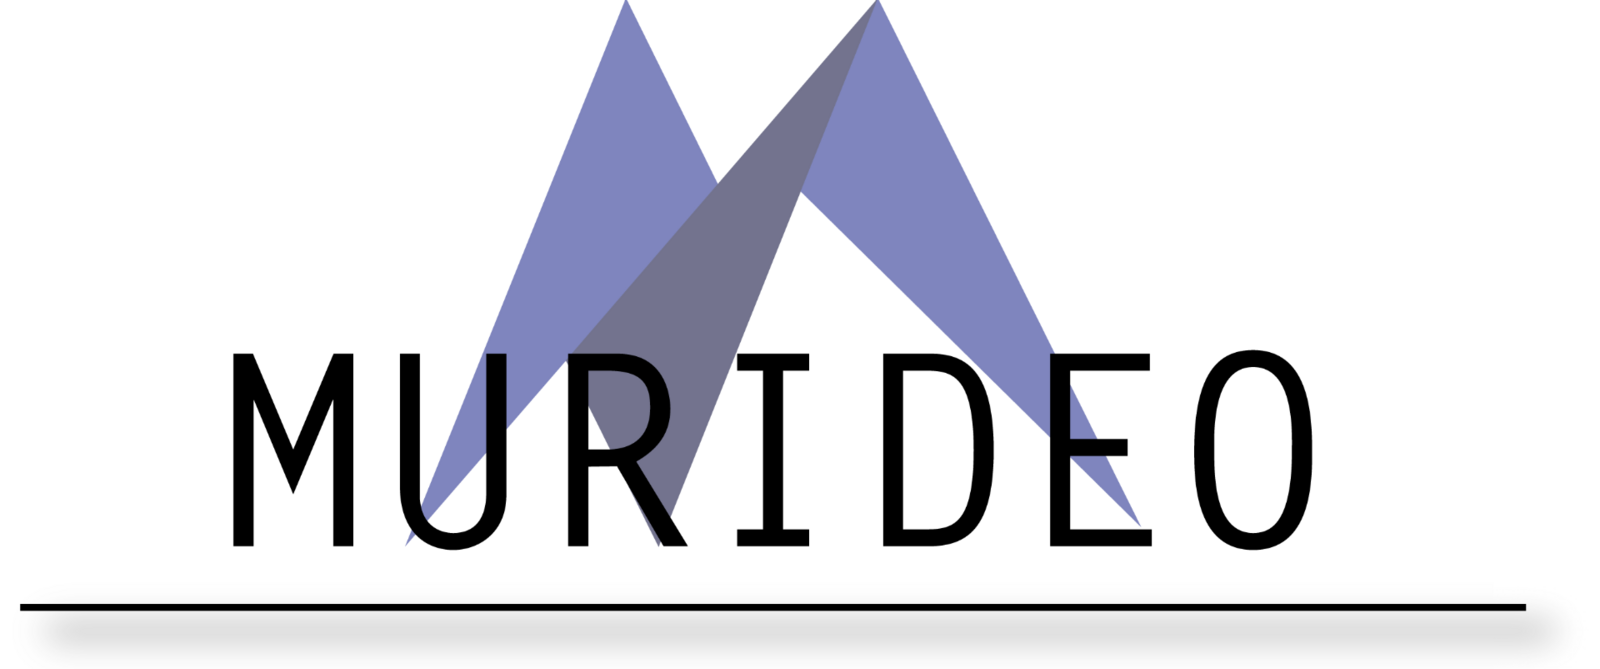 murideo-copy_1.png